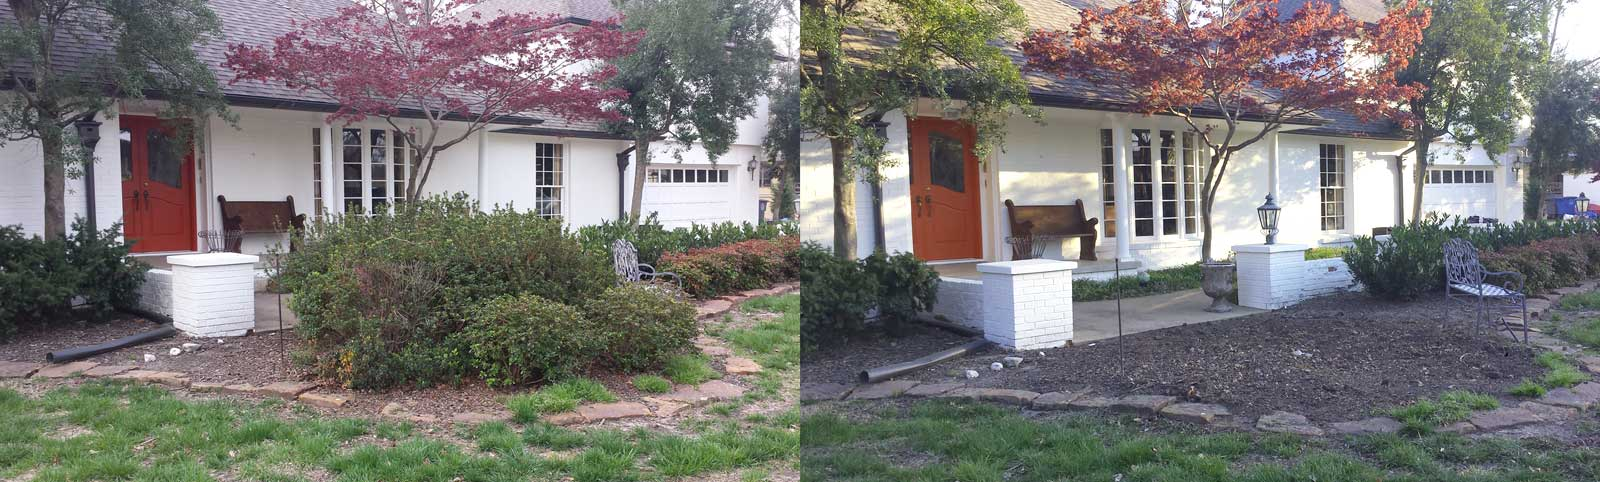 Landscape Cleanup: Before and After